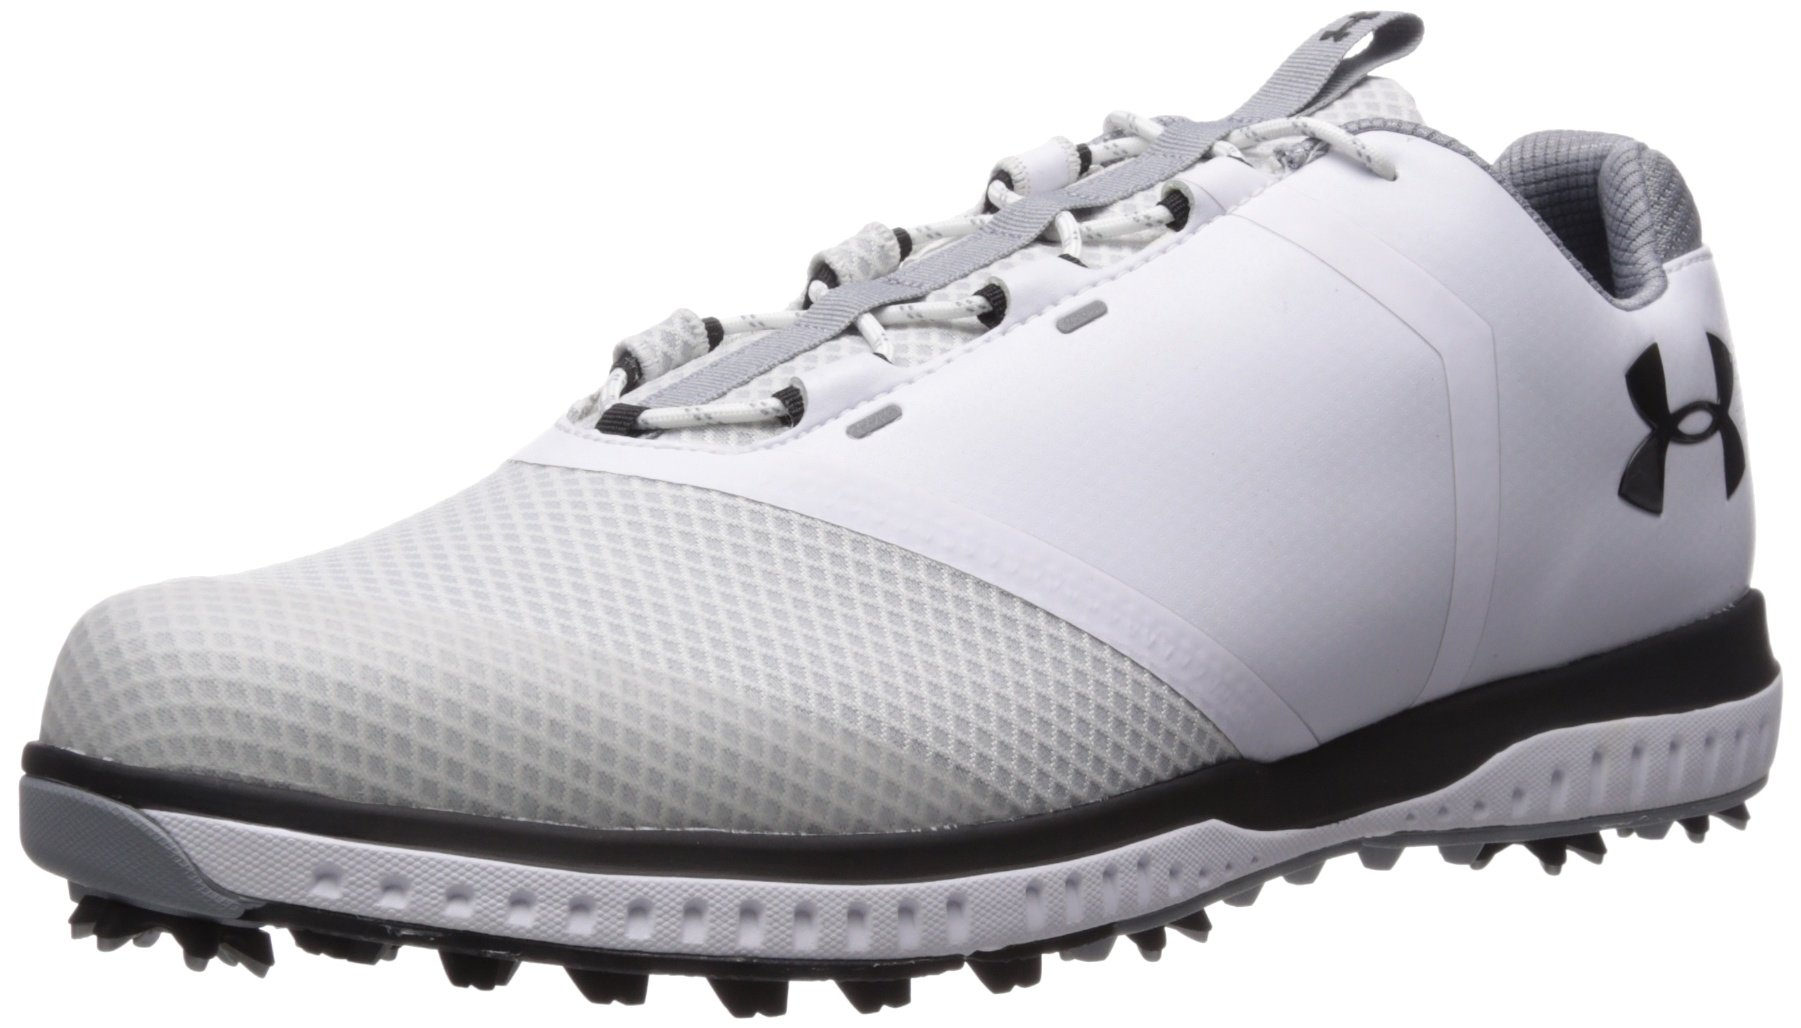 Under Armour Men's Fade RST Golf Shoe